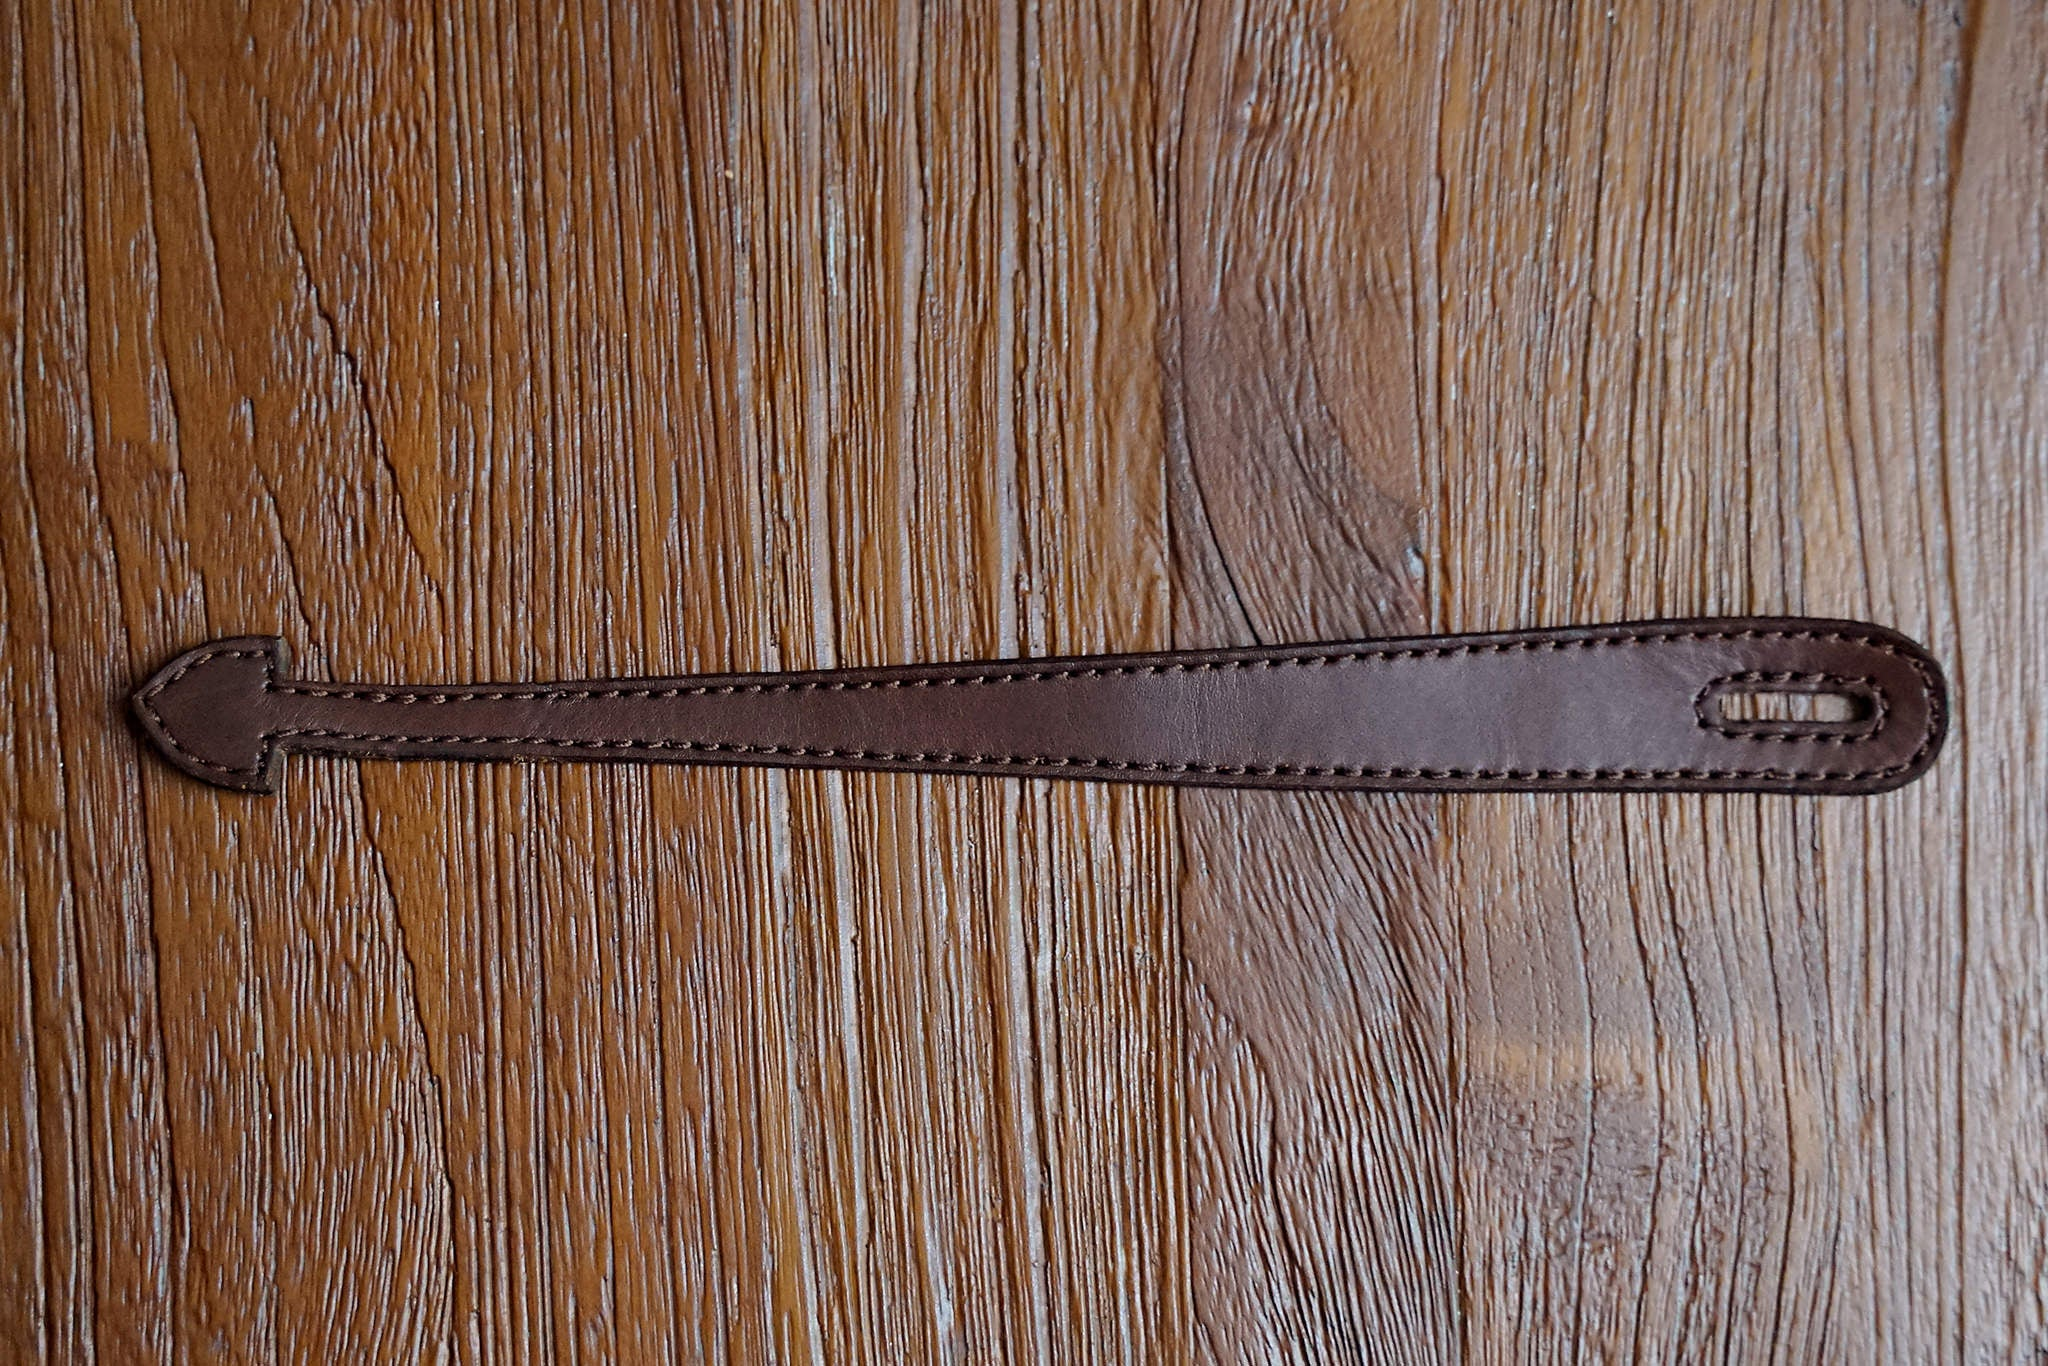 Complimentary leather headstock loop, note the design is not final, the loop you receive might have different details. Image for illustration only.